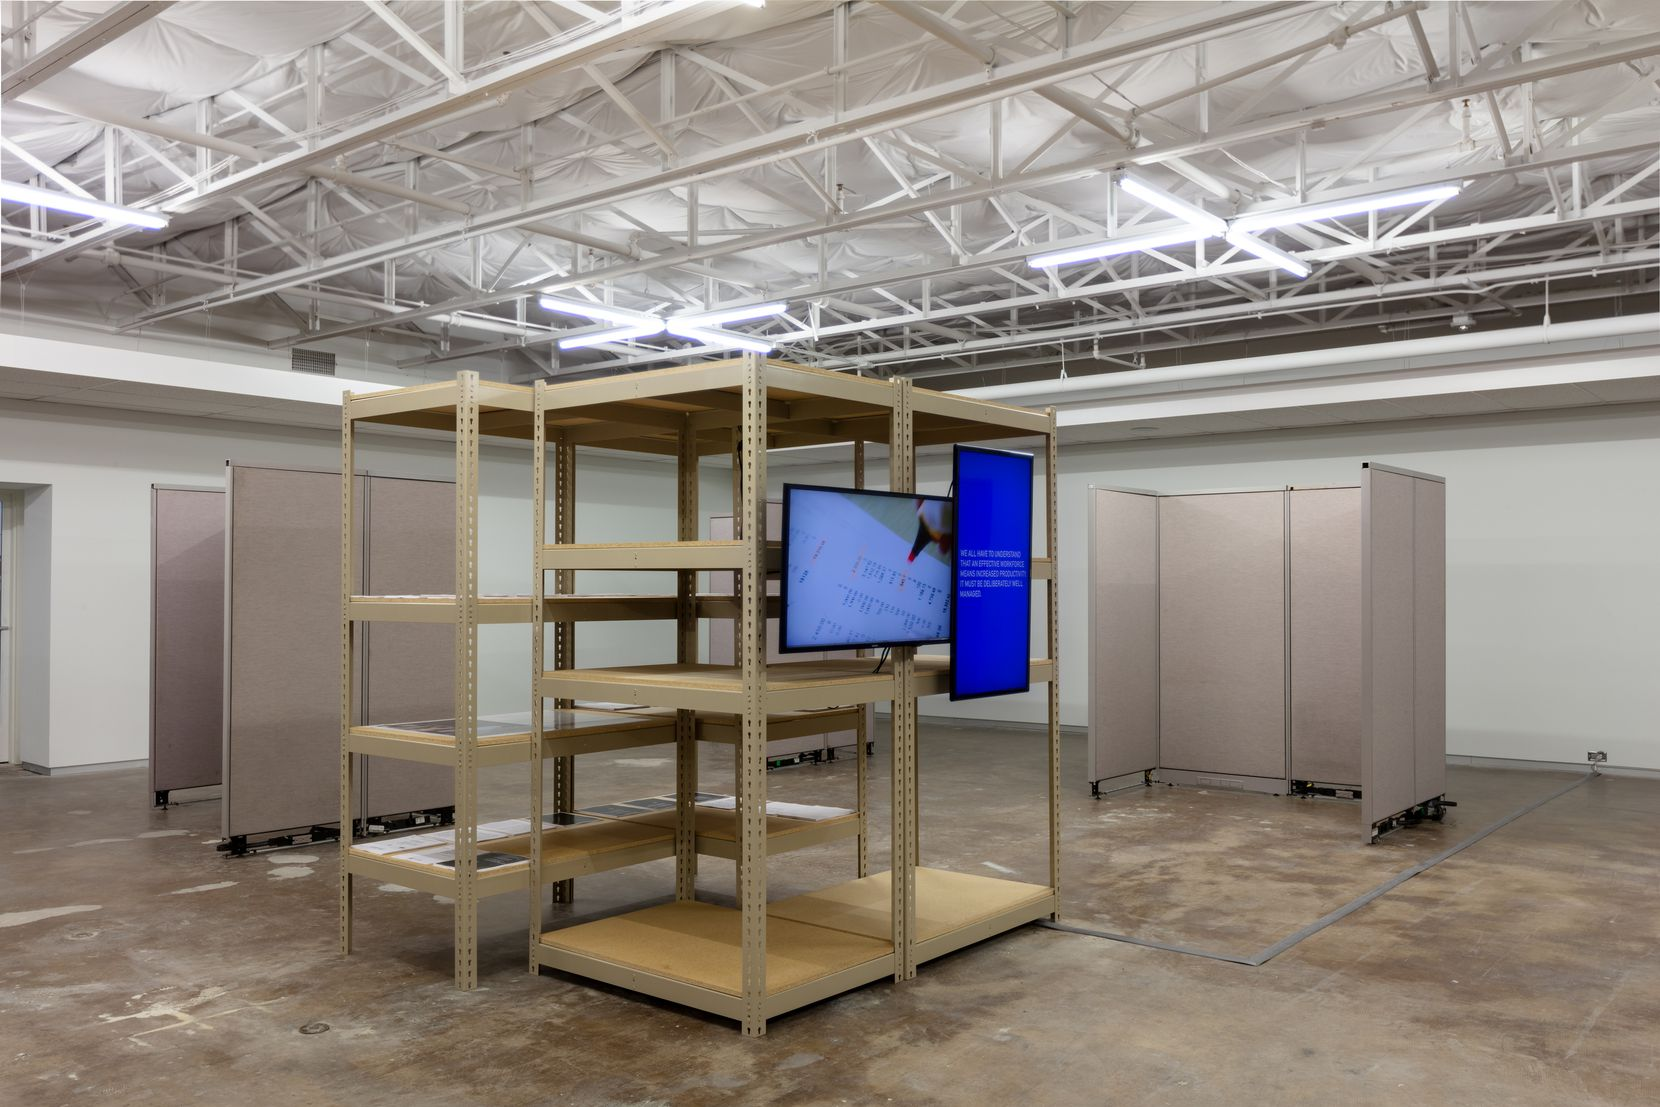 Jessica Vaughn mined 55 workplace panels directly from the Department of Education in Austin for her new exhibition.